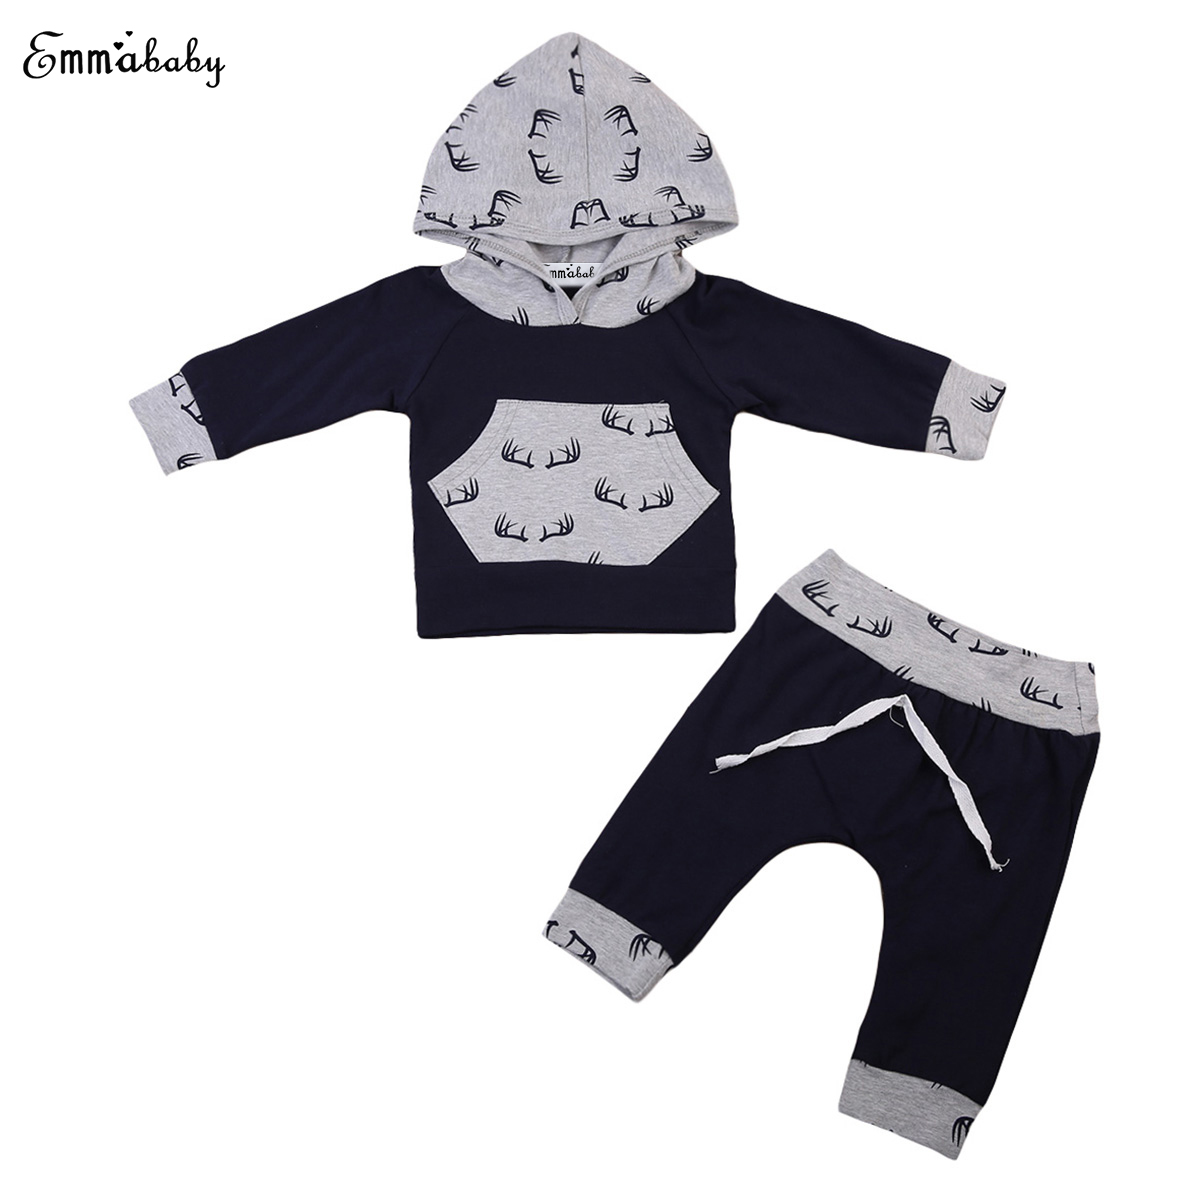 Emmababy 2PCS Toddler Baby Boys Floral Hooded Tops Sweatshirt + Pants Hoodie Outfit Set